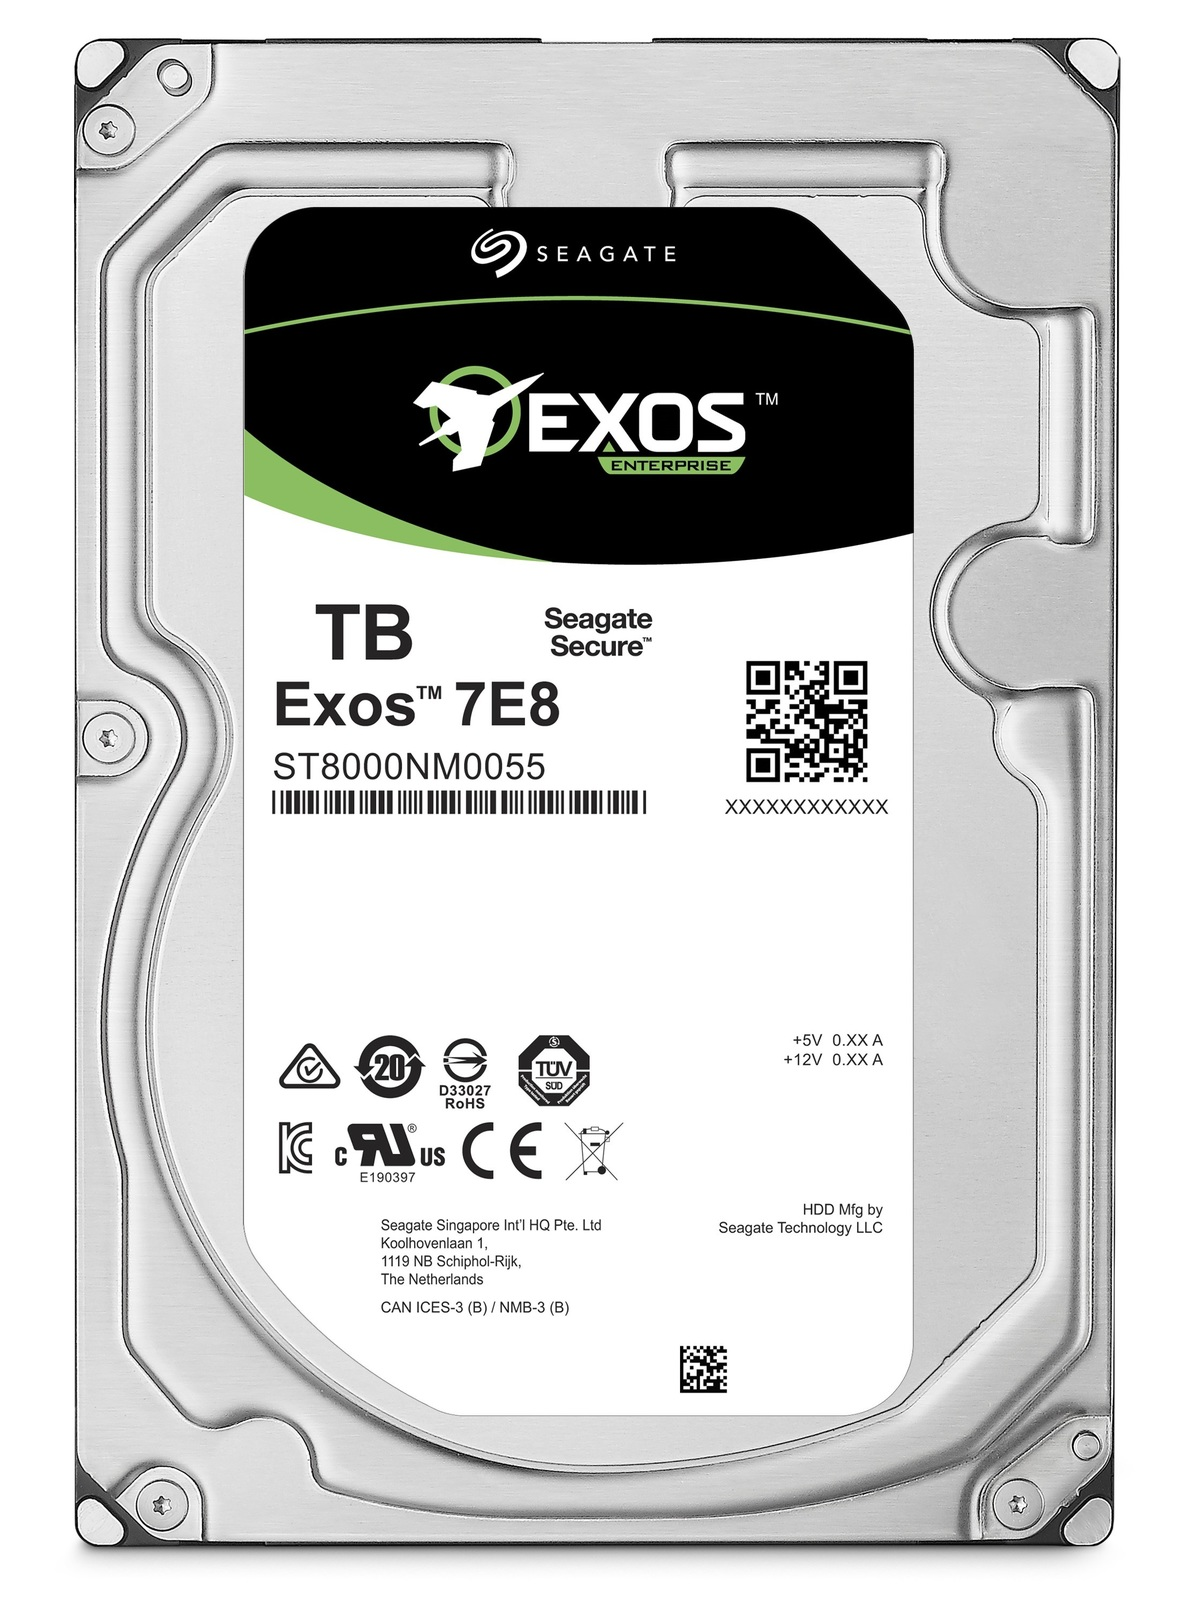 1tb Seagate Exos 7e8 Enterprise Hard Drive At Mighty Ape Australia Baracuda 35 Sata 512n 6gb S Hdd